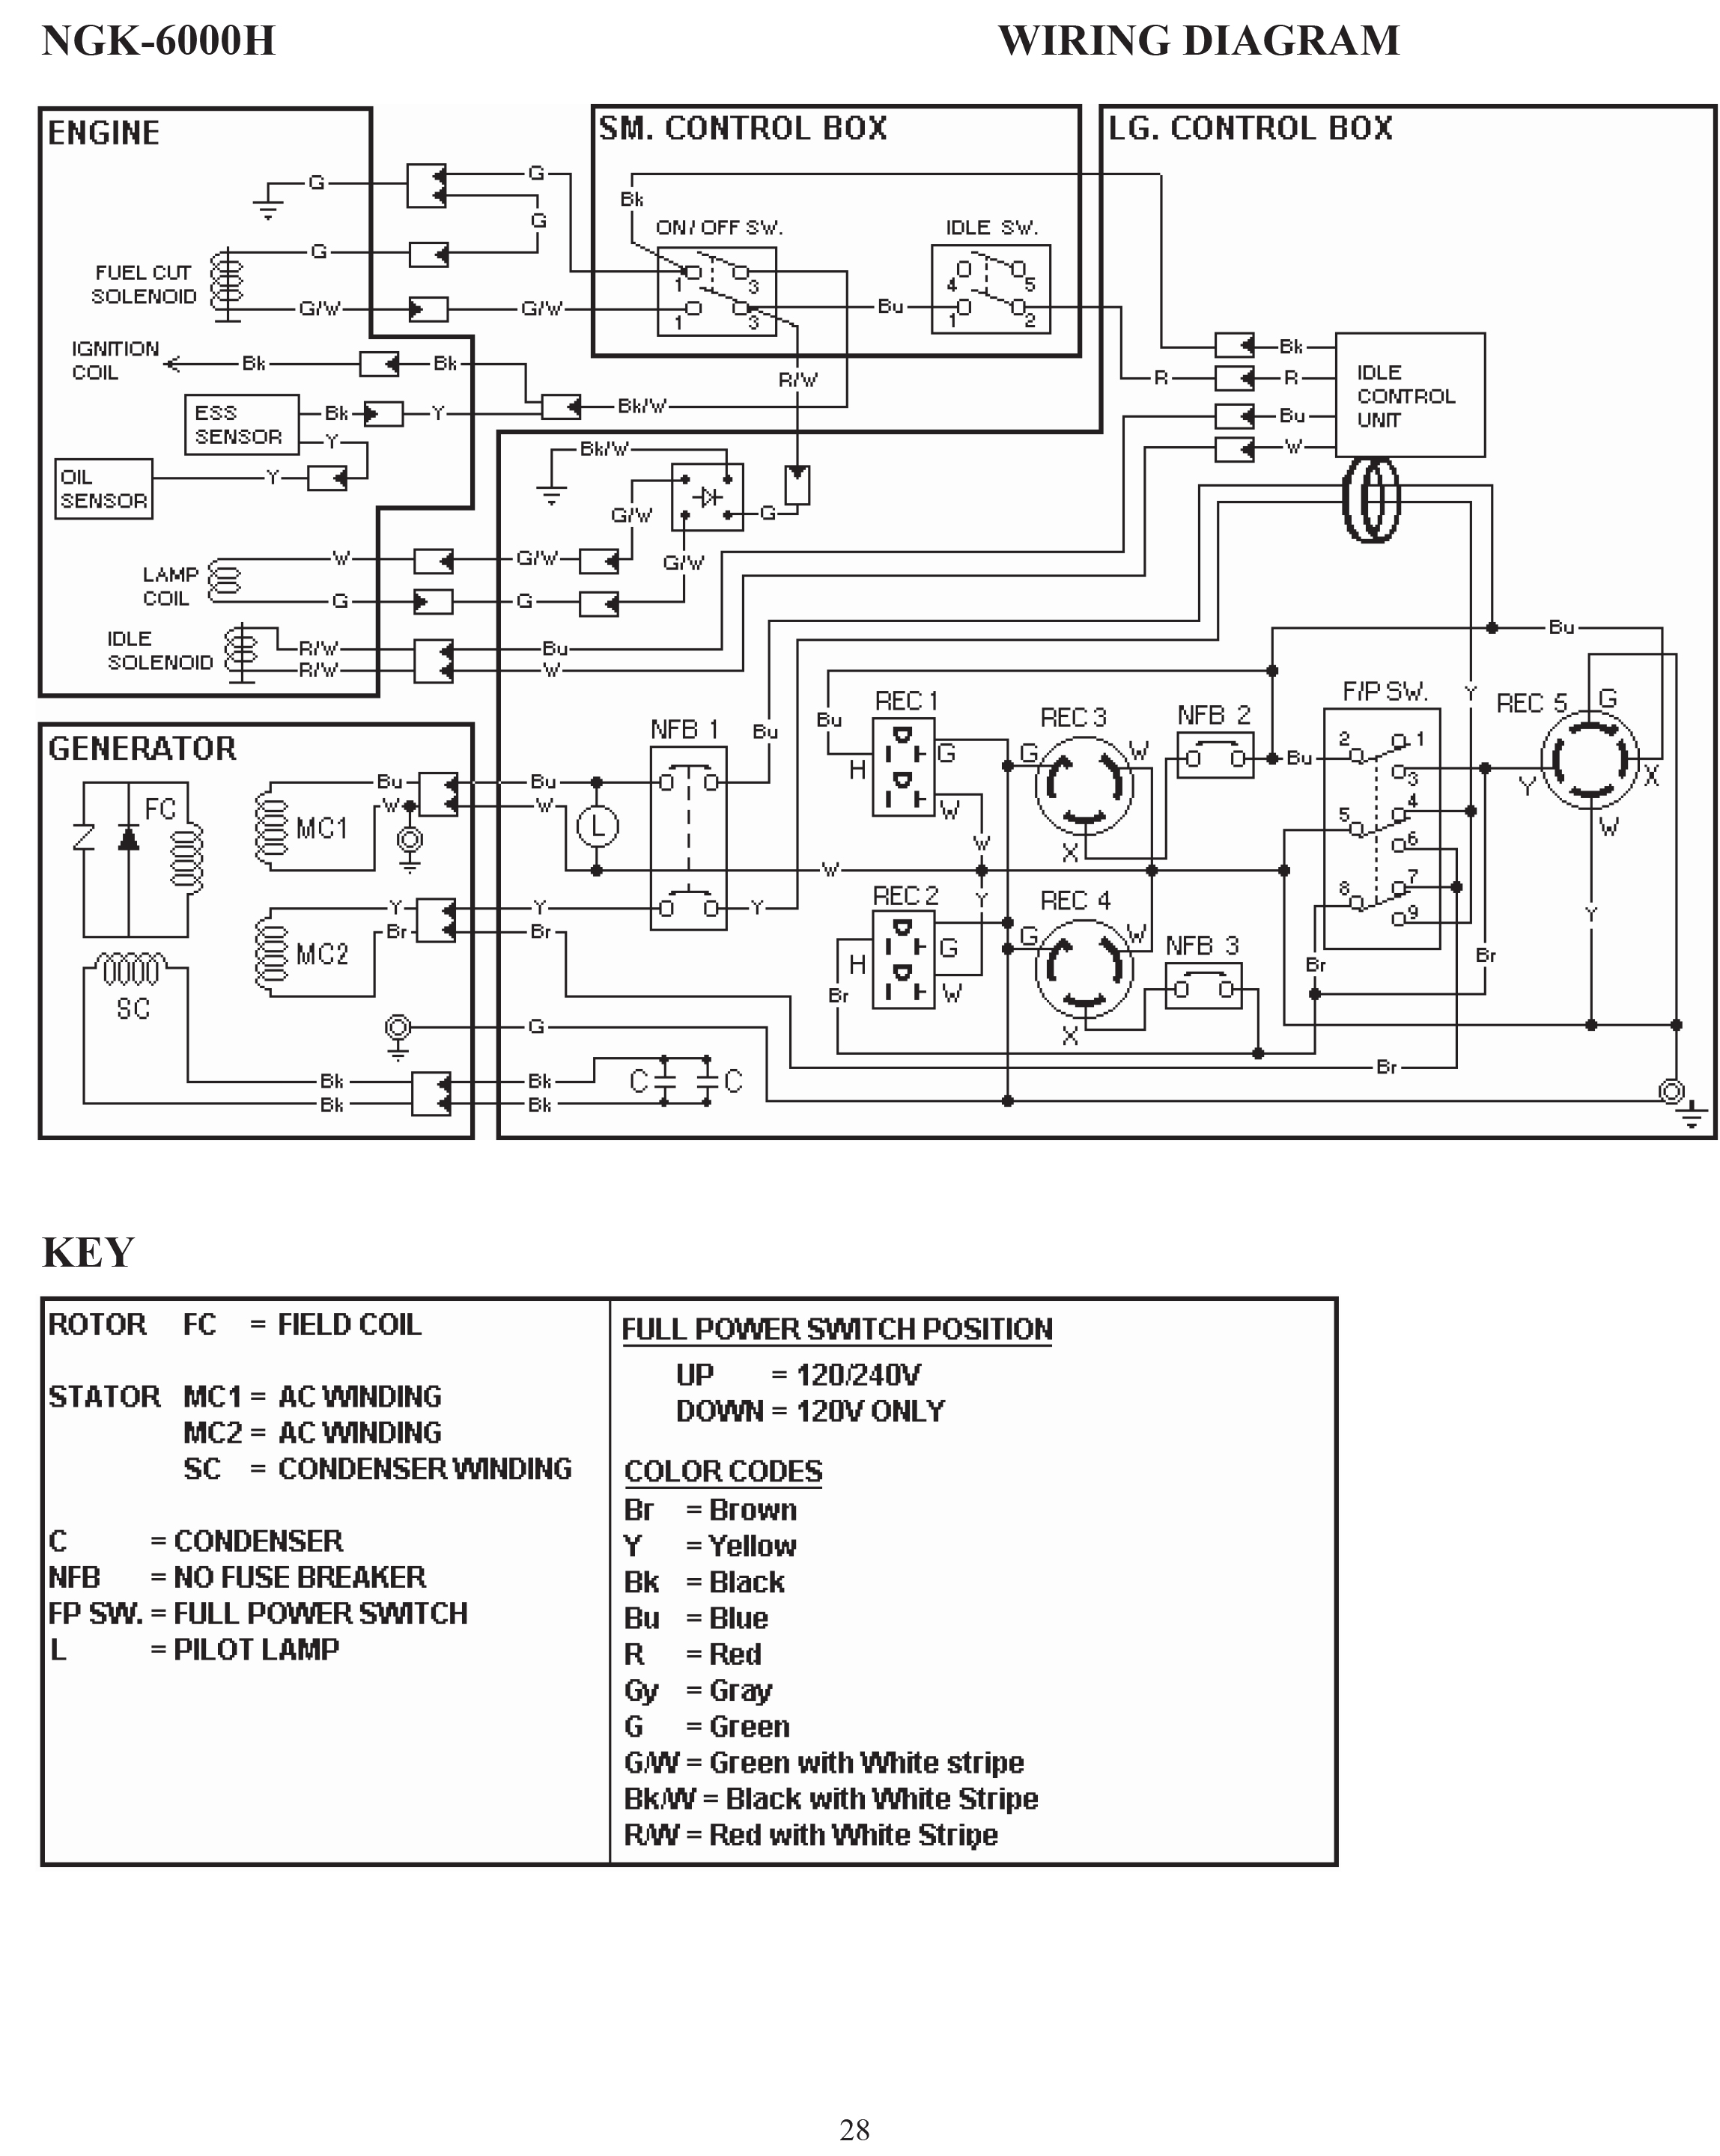 Oliver Tractor Schematics furthermore Oliver 77 Wiring Diagram besides Oliver Tractor Wiring Diagram Older likewise Oliver 550 Wiring Schematic as well Viewit. on oliver 770 wiring diagram